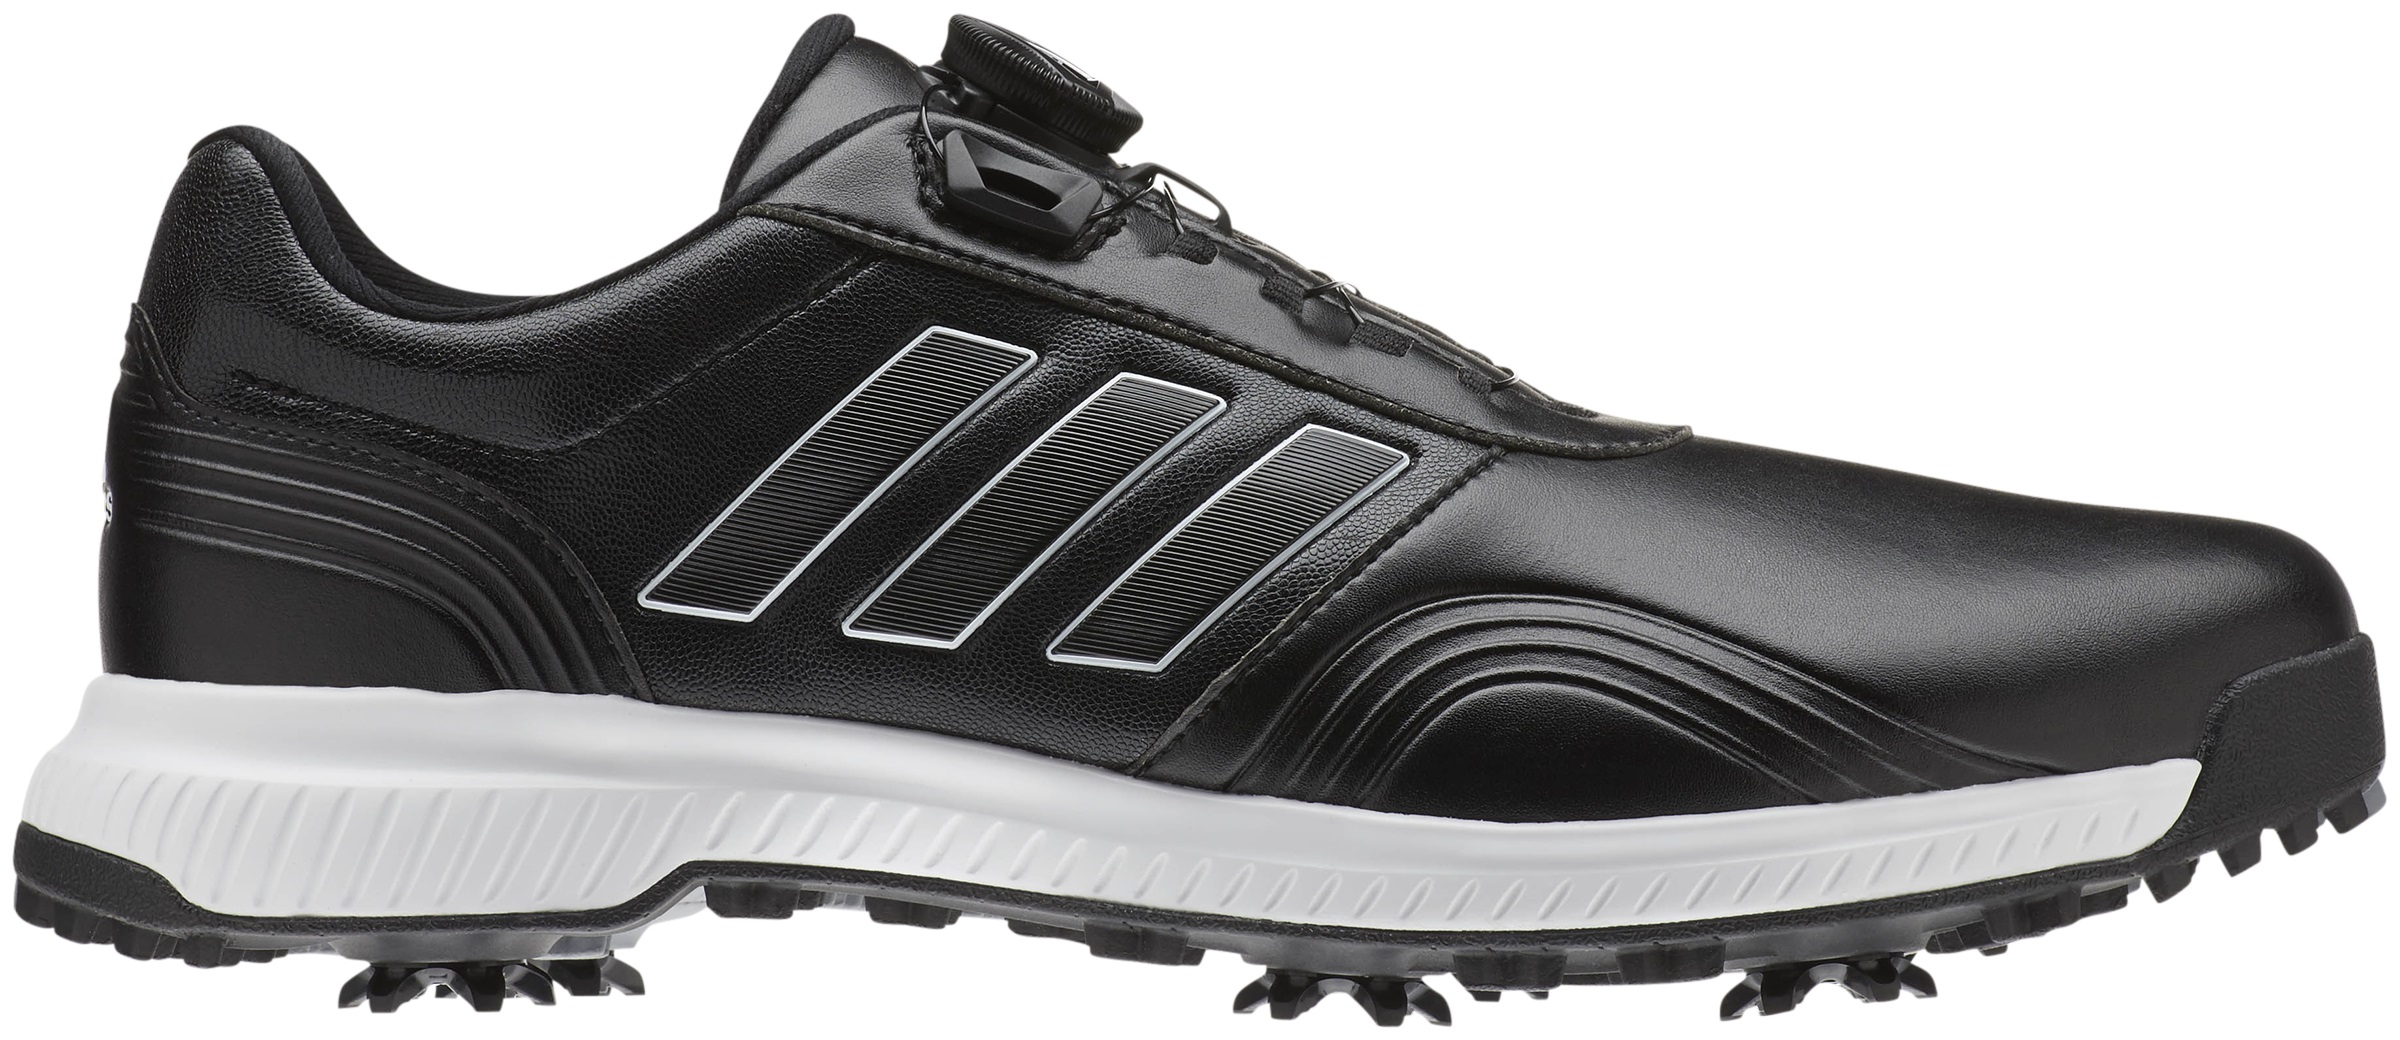 premium selection ce7d1 73f30 Adidas Golf- CP Traxion BOA Shoes